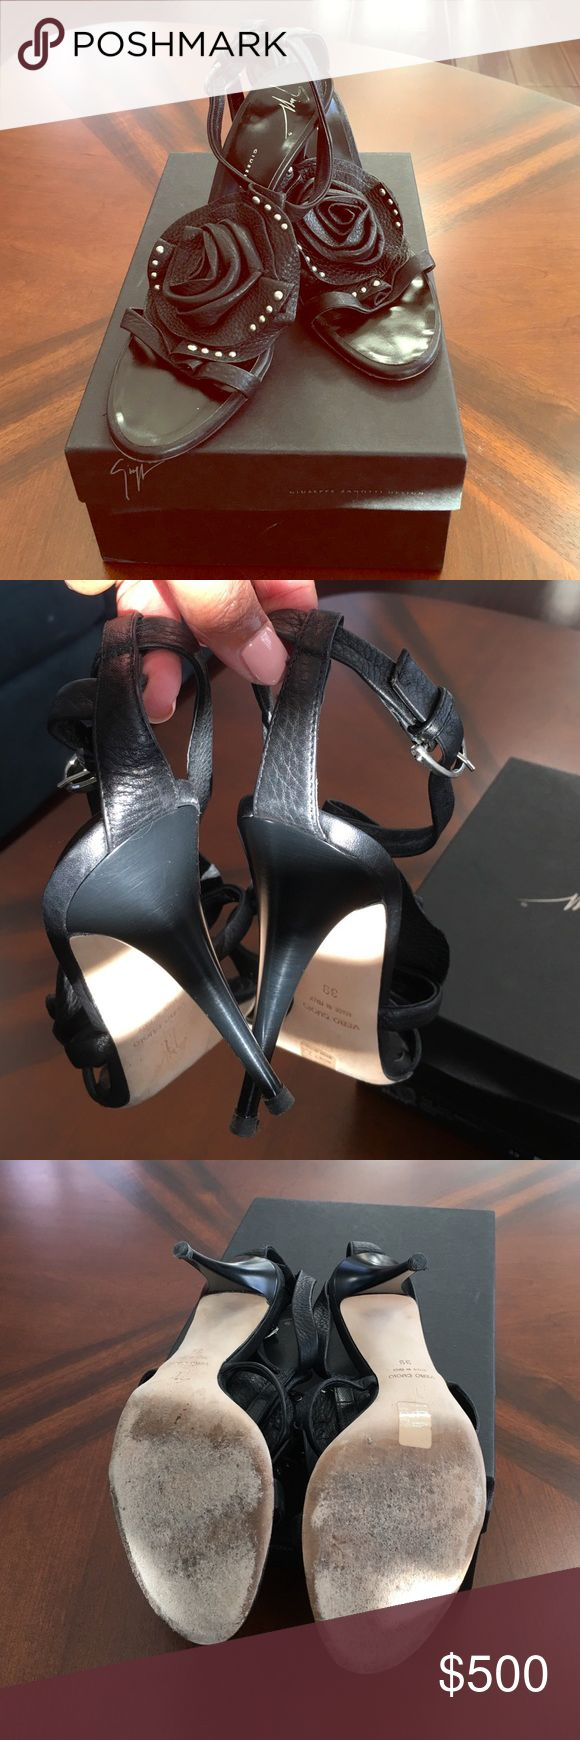 Giuseppe Zanotti Design GIUSEPPE ZANOTTI TAZ SANDALO LEATHER. Gently worn. Box and dust bag included Giuseppe Zanotti Shoes Heels